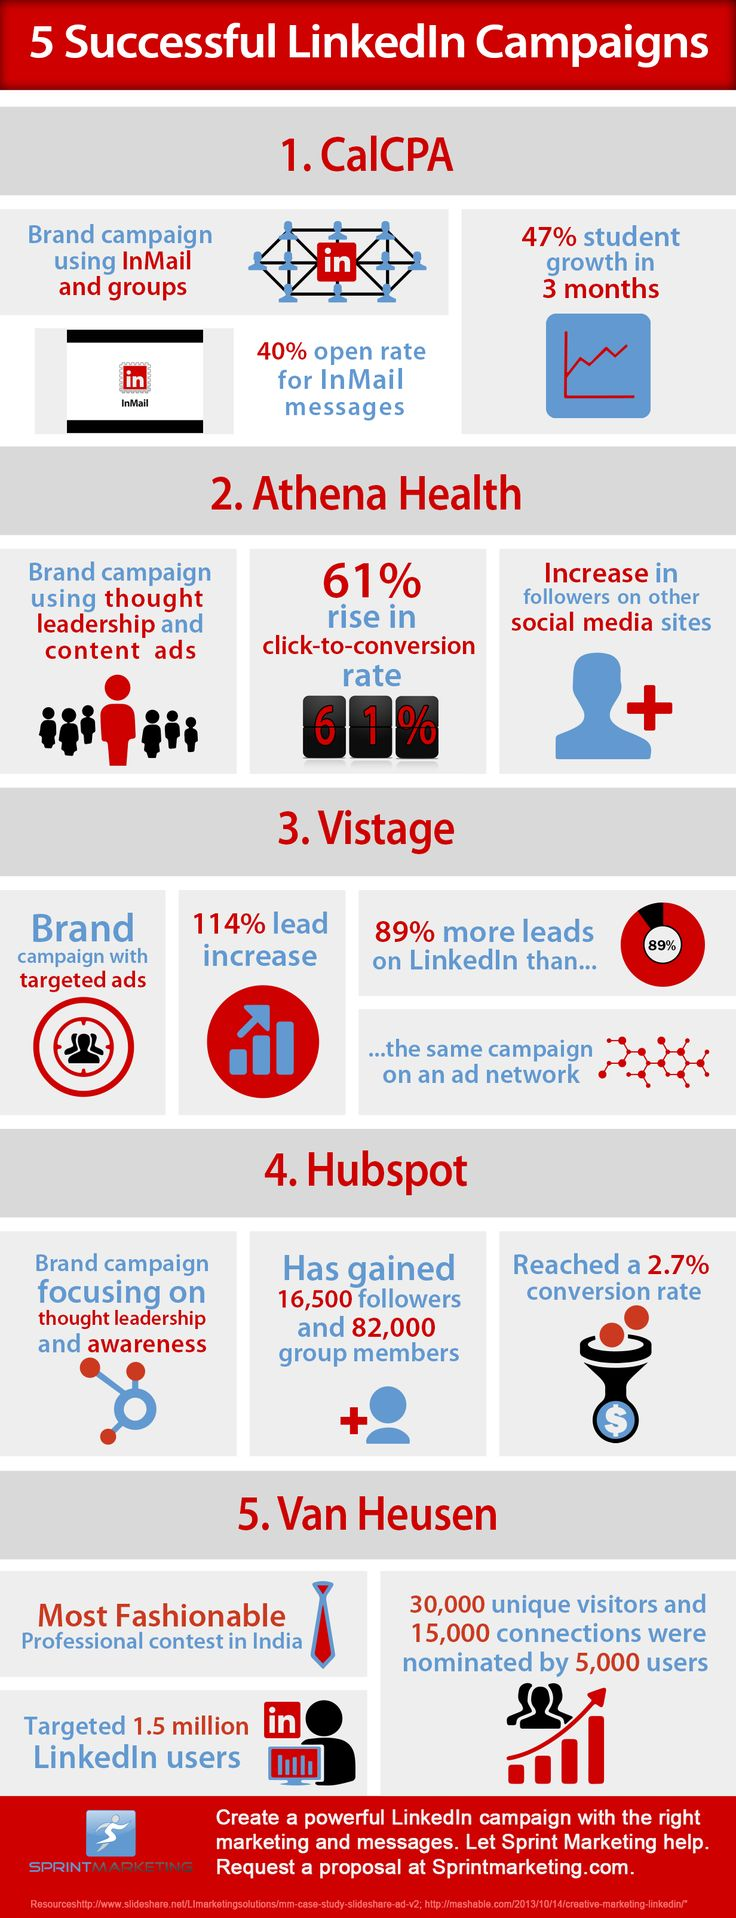 5 Successful LinkedIn Campaigns Infographic | Sprint Marketing